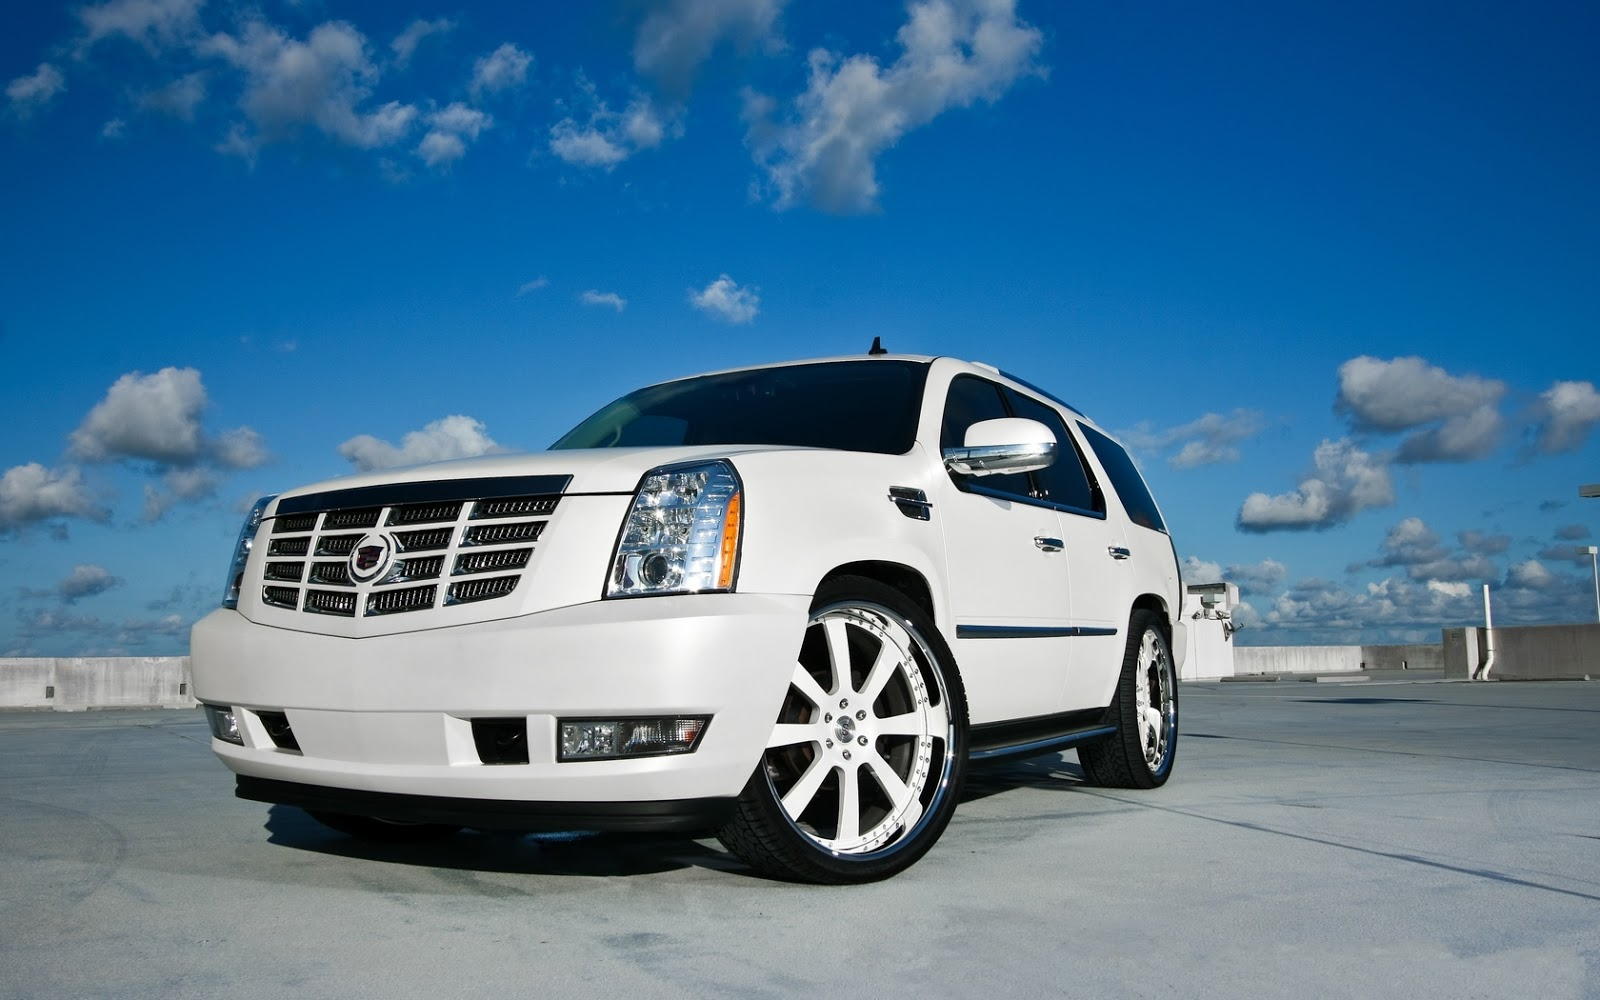 HD Car Wallpapers: Cadillac Escalade Wallpaper HD